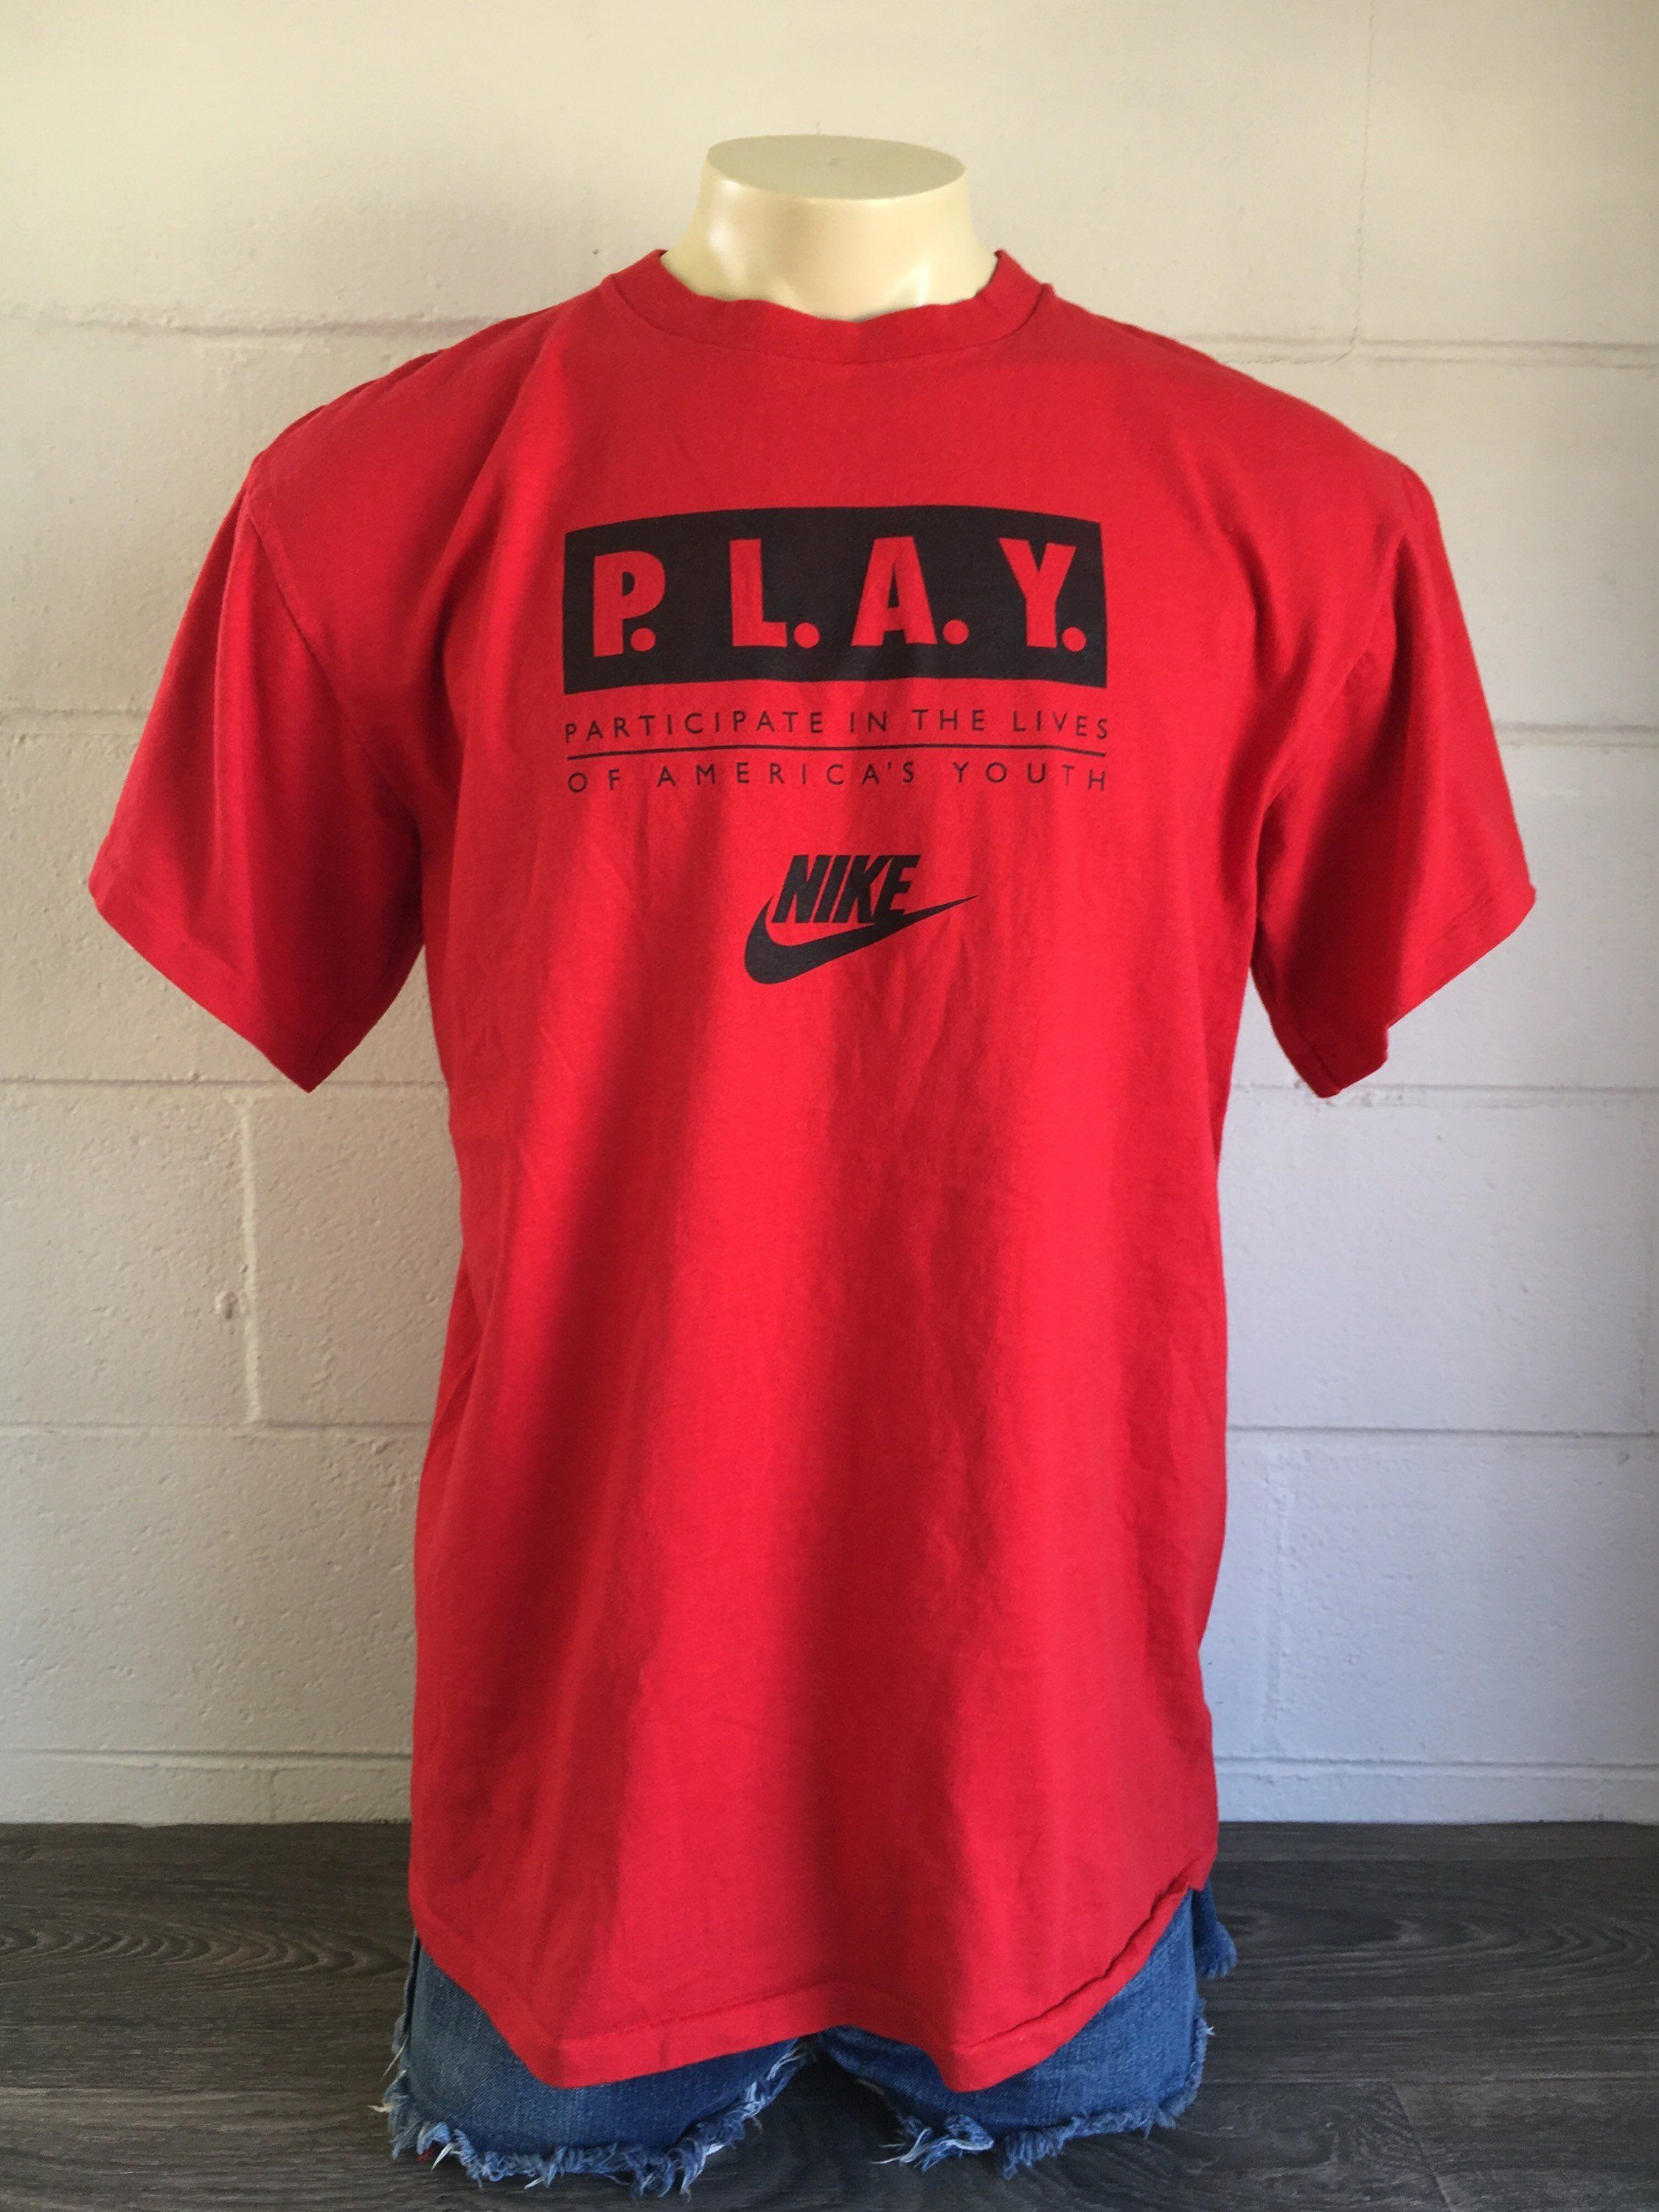 c3c2a2d6f27 Nike Play Tshirt Vintage 90s Grey Tag Will We Ever Learn Swoosh Shirt Made  USA Single Stitch Red Tee XXL by sweetVTGtshirt on Etsy